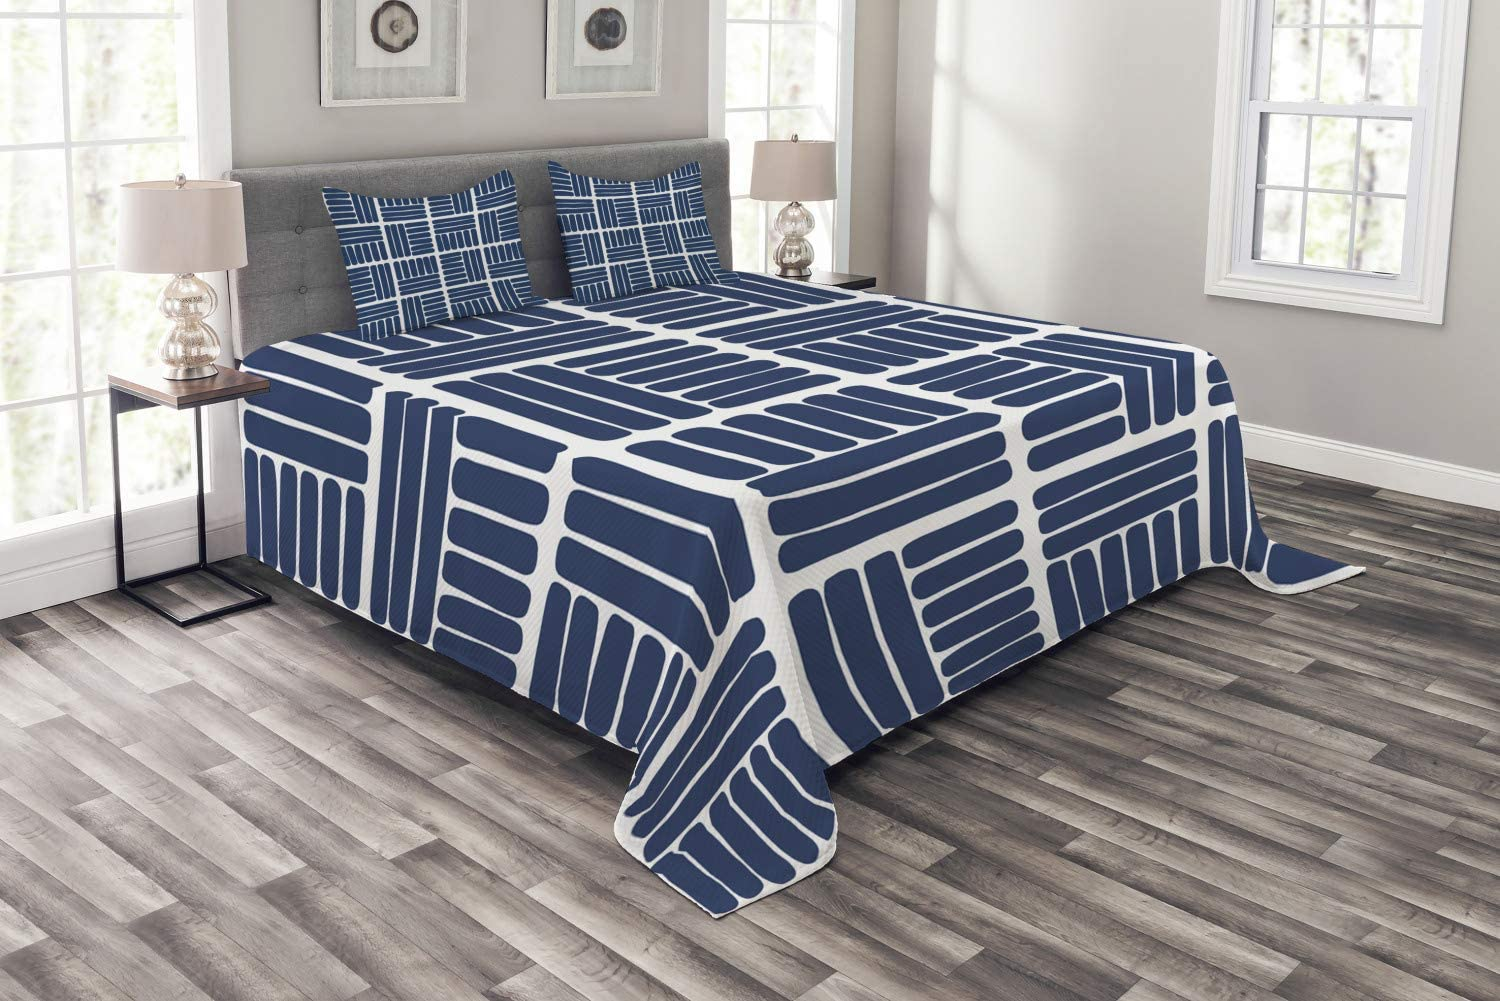 Ambesonne Geometric Bedspread Modern Stripes G Ranking TOP7 Shape Squares Sales for sale in